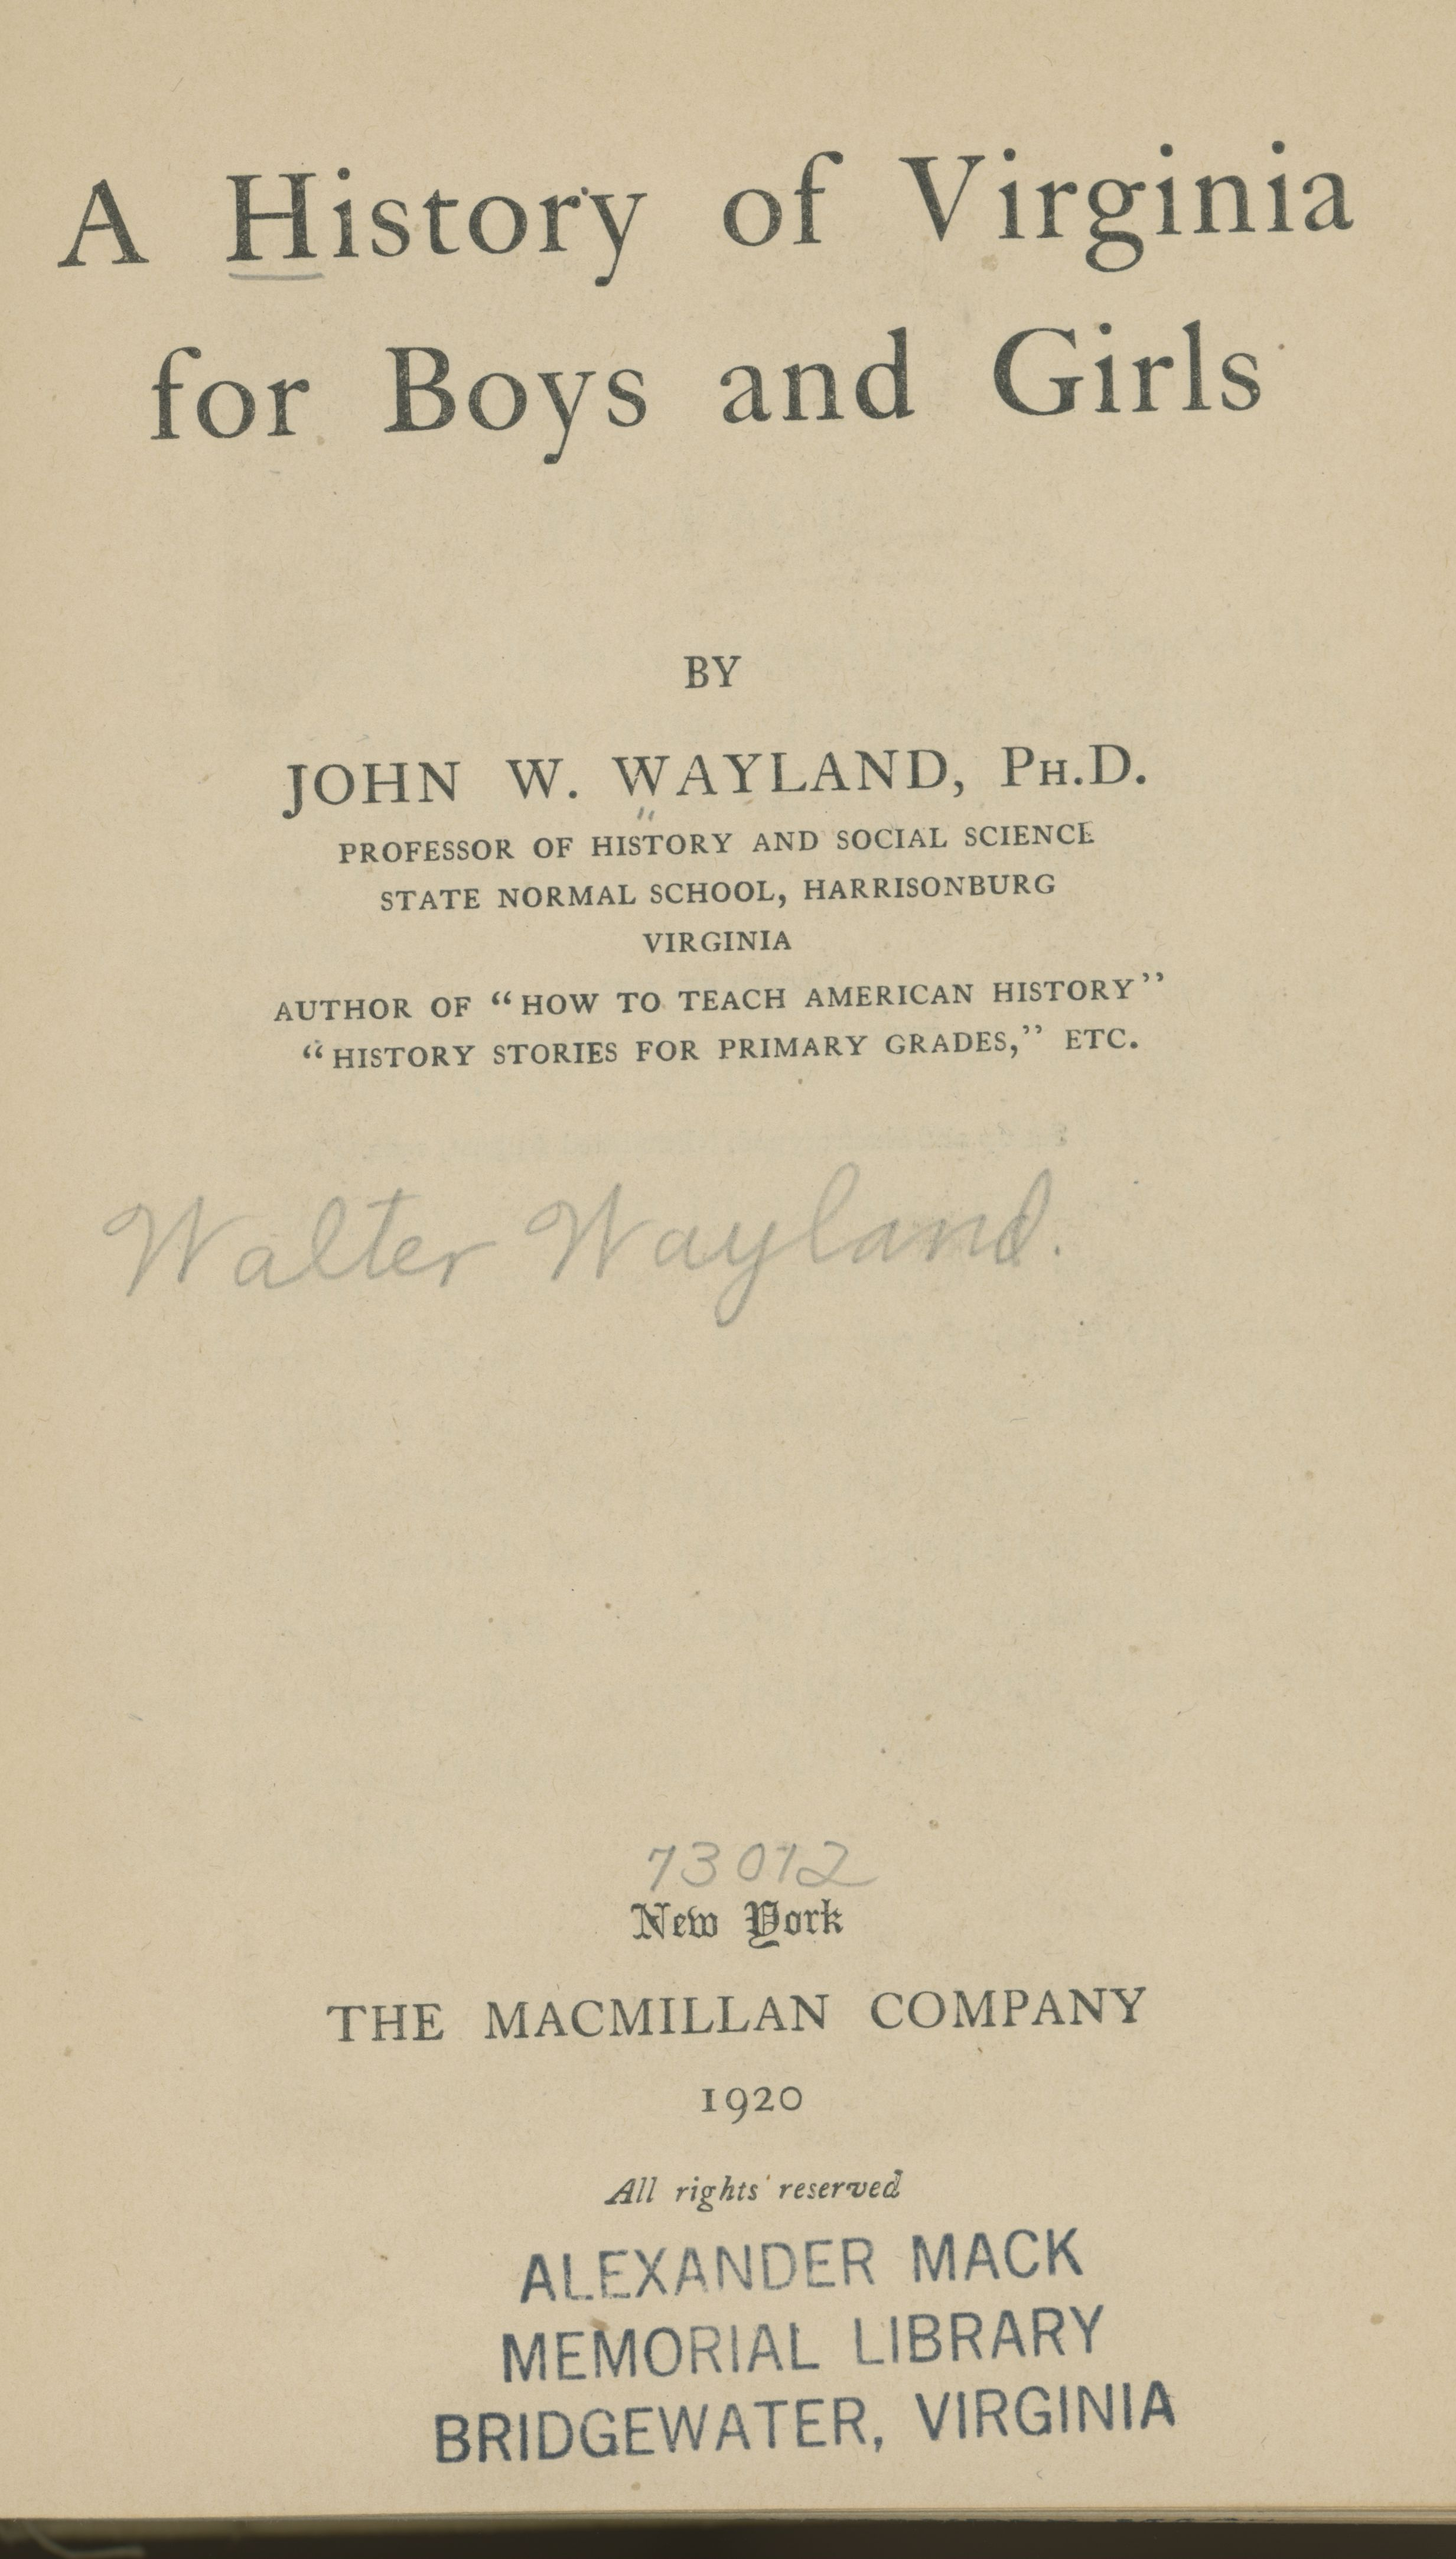 Title page from 'A History of Virginia for Boys and Girls' by John W. Wayland.